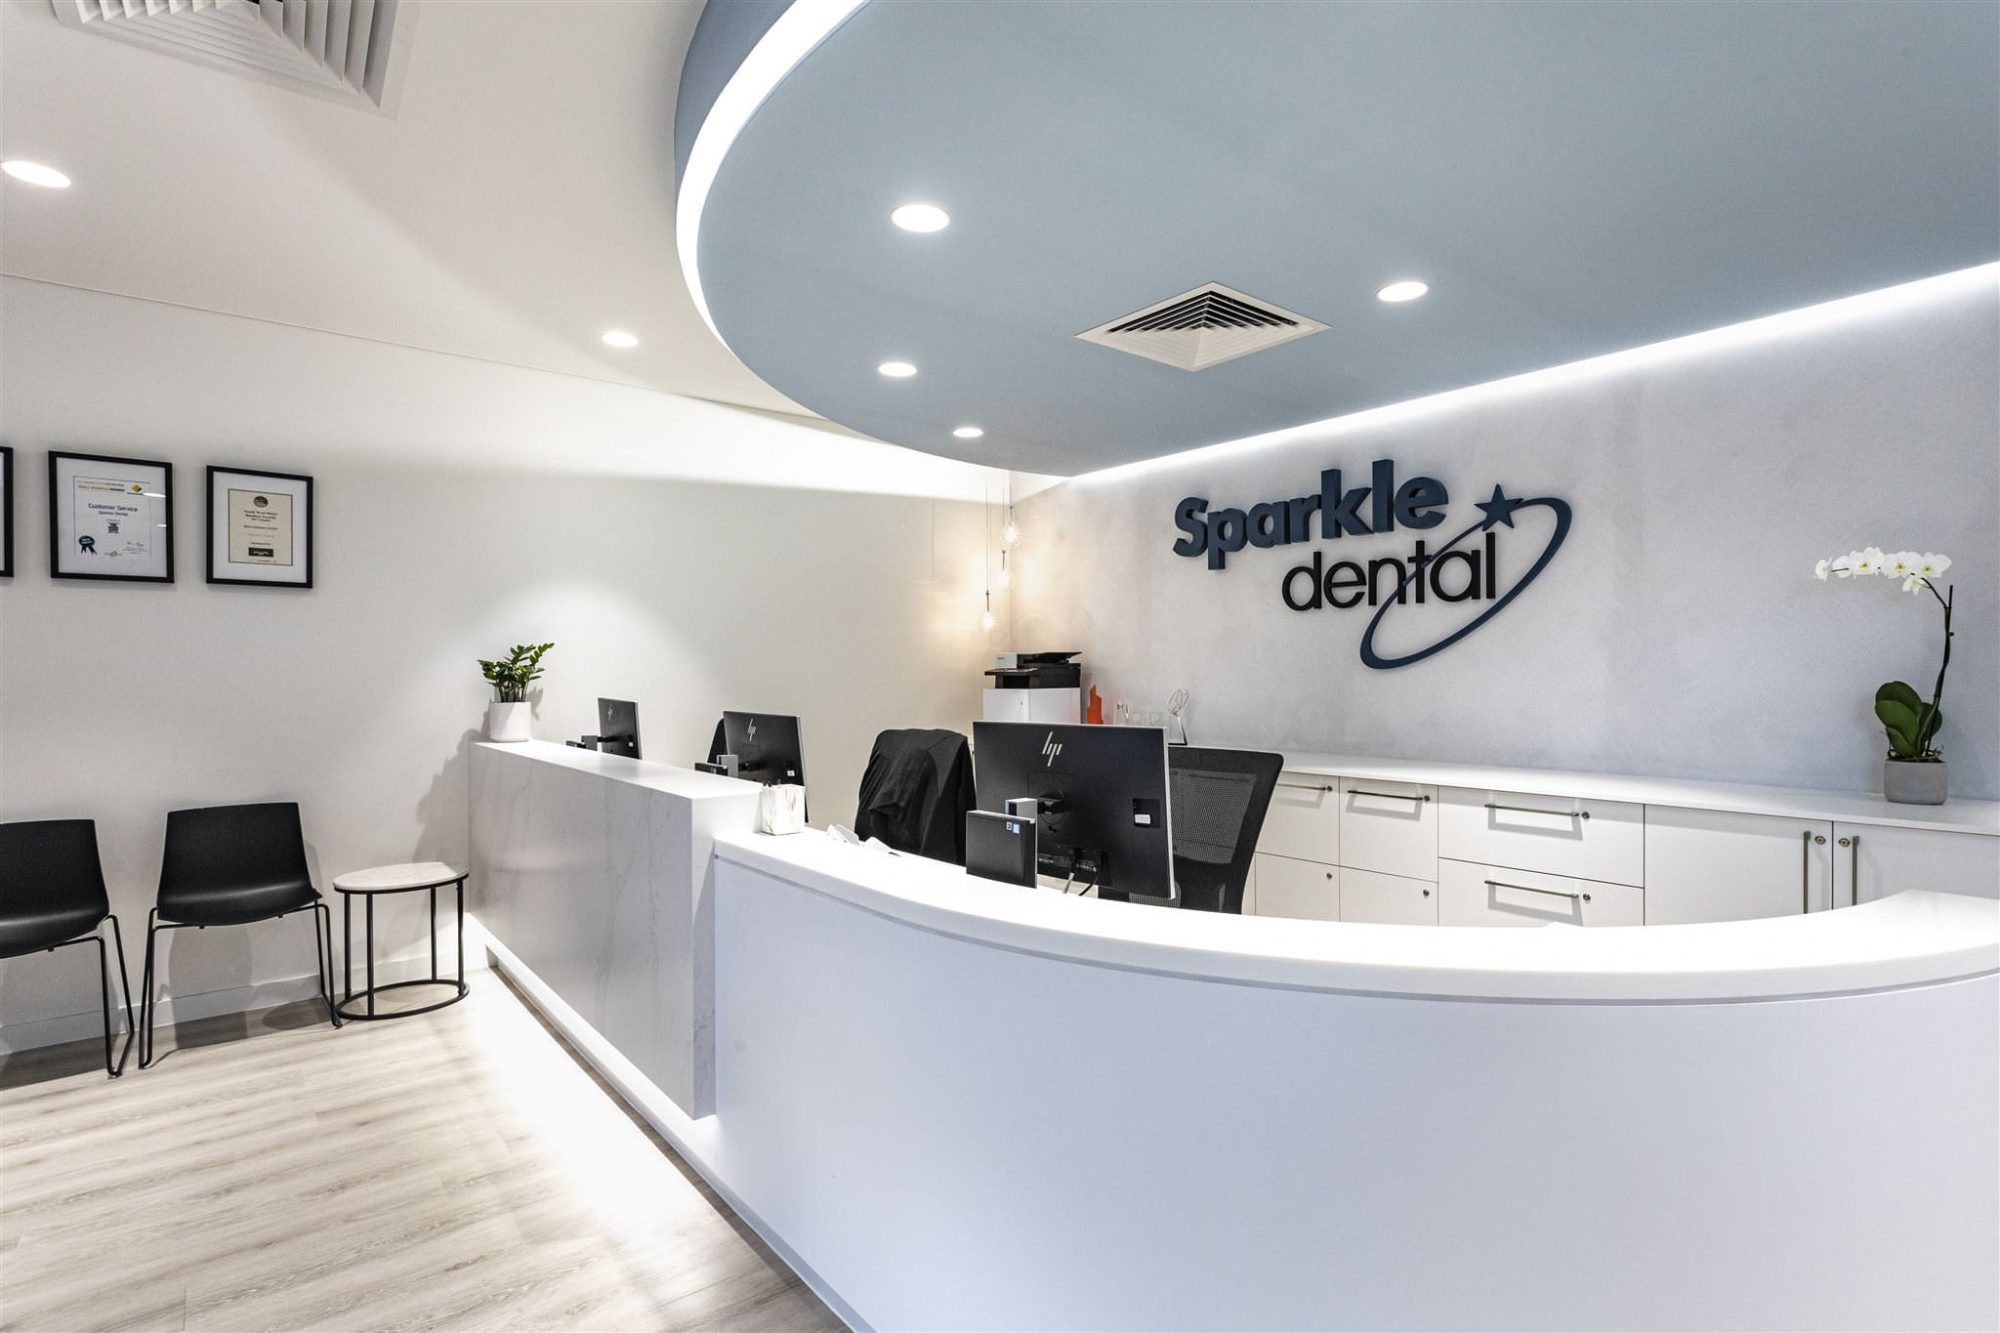 Sparkle Dental photographed by Perth commercial interior photographer Dennis Tan Creative